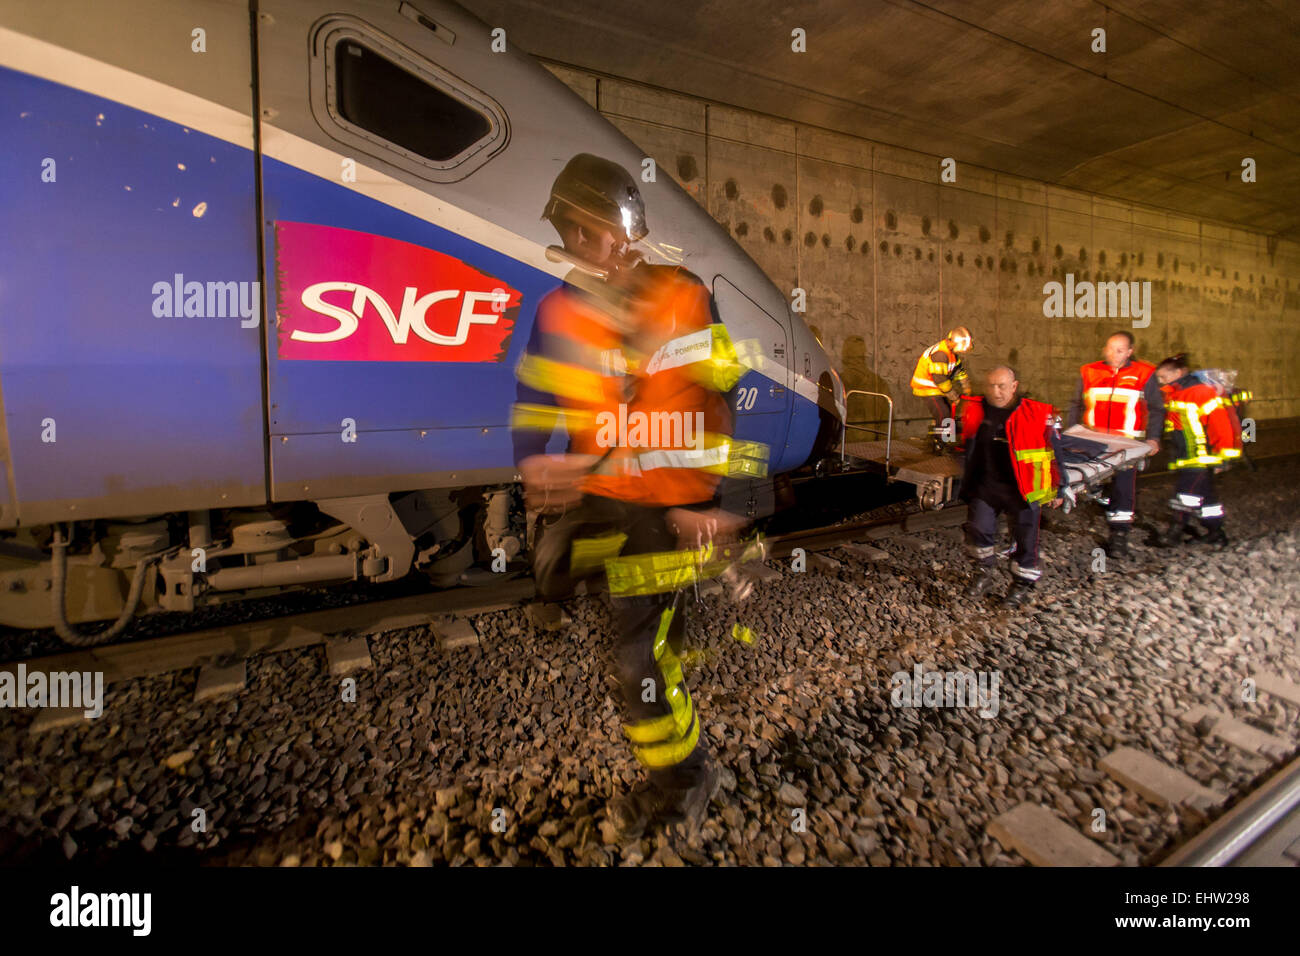 SIMULATION OF RAILWAY ACCIDENTS - Stock Image